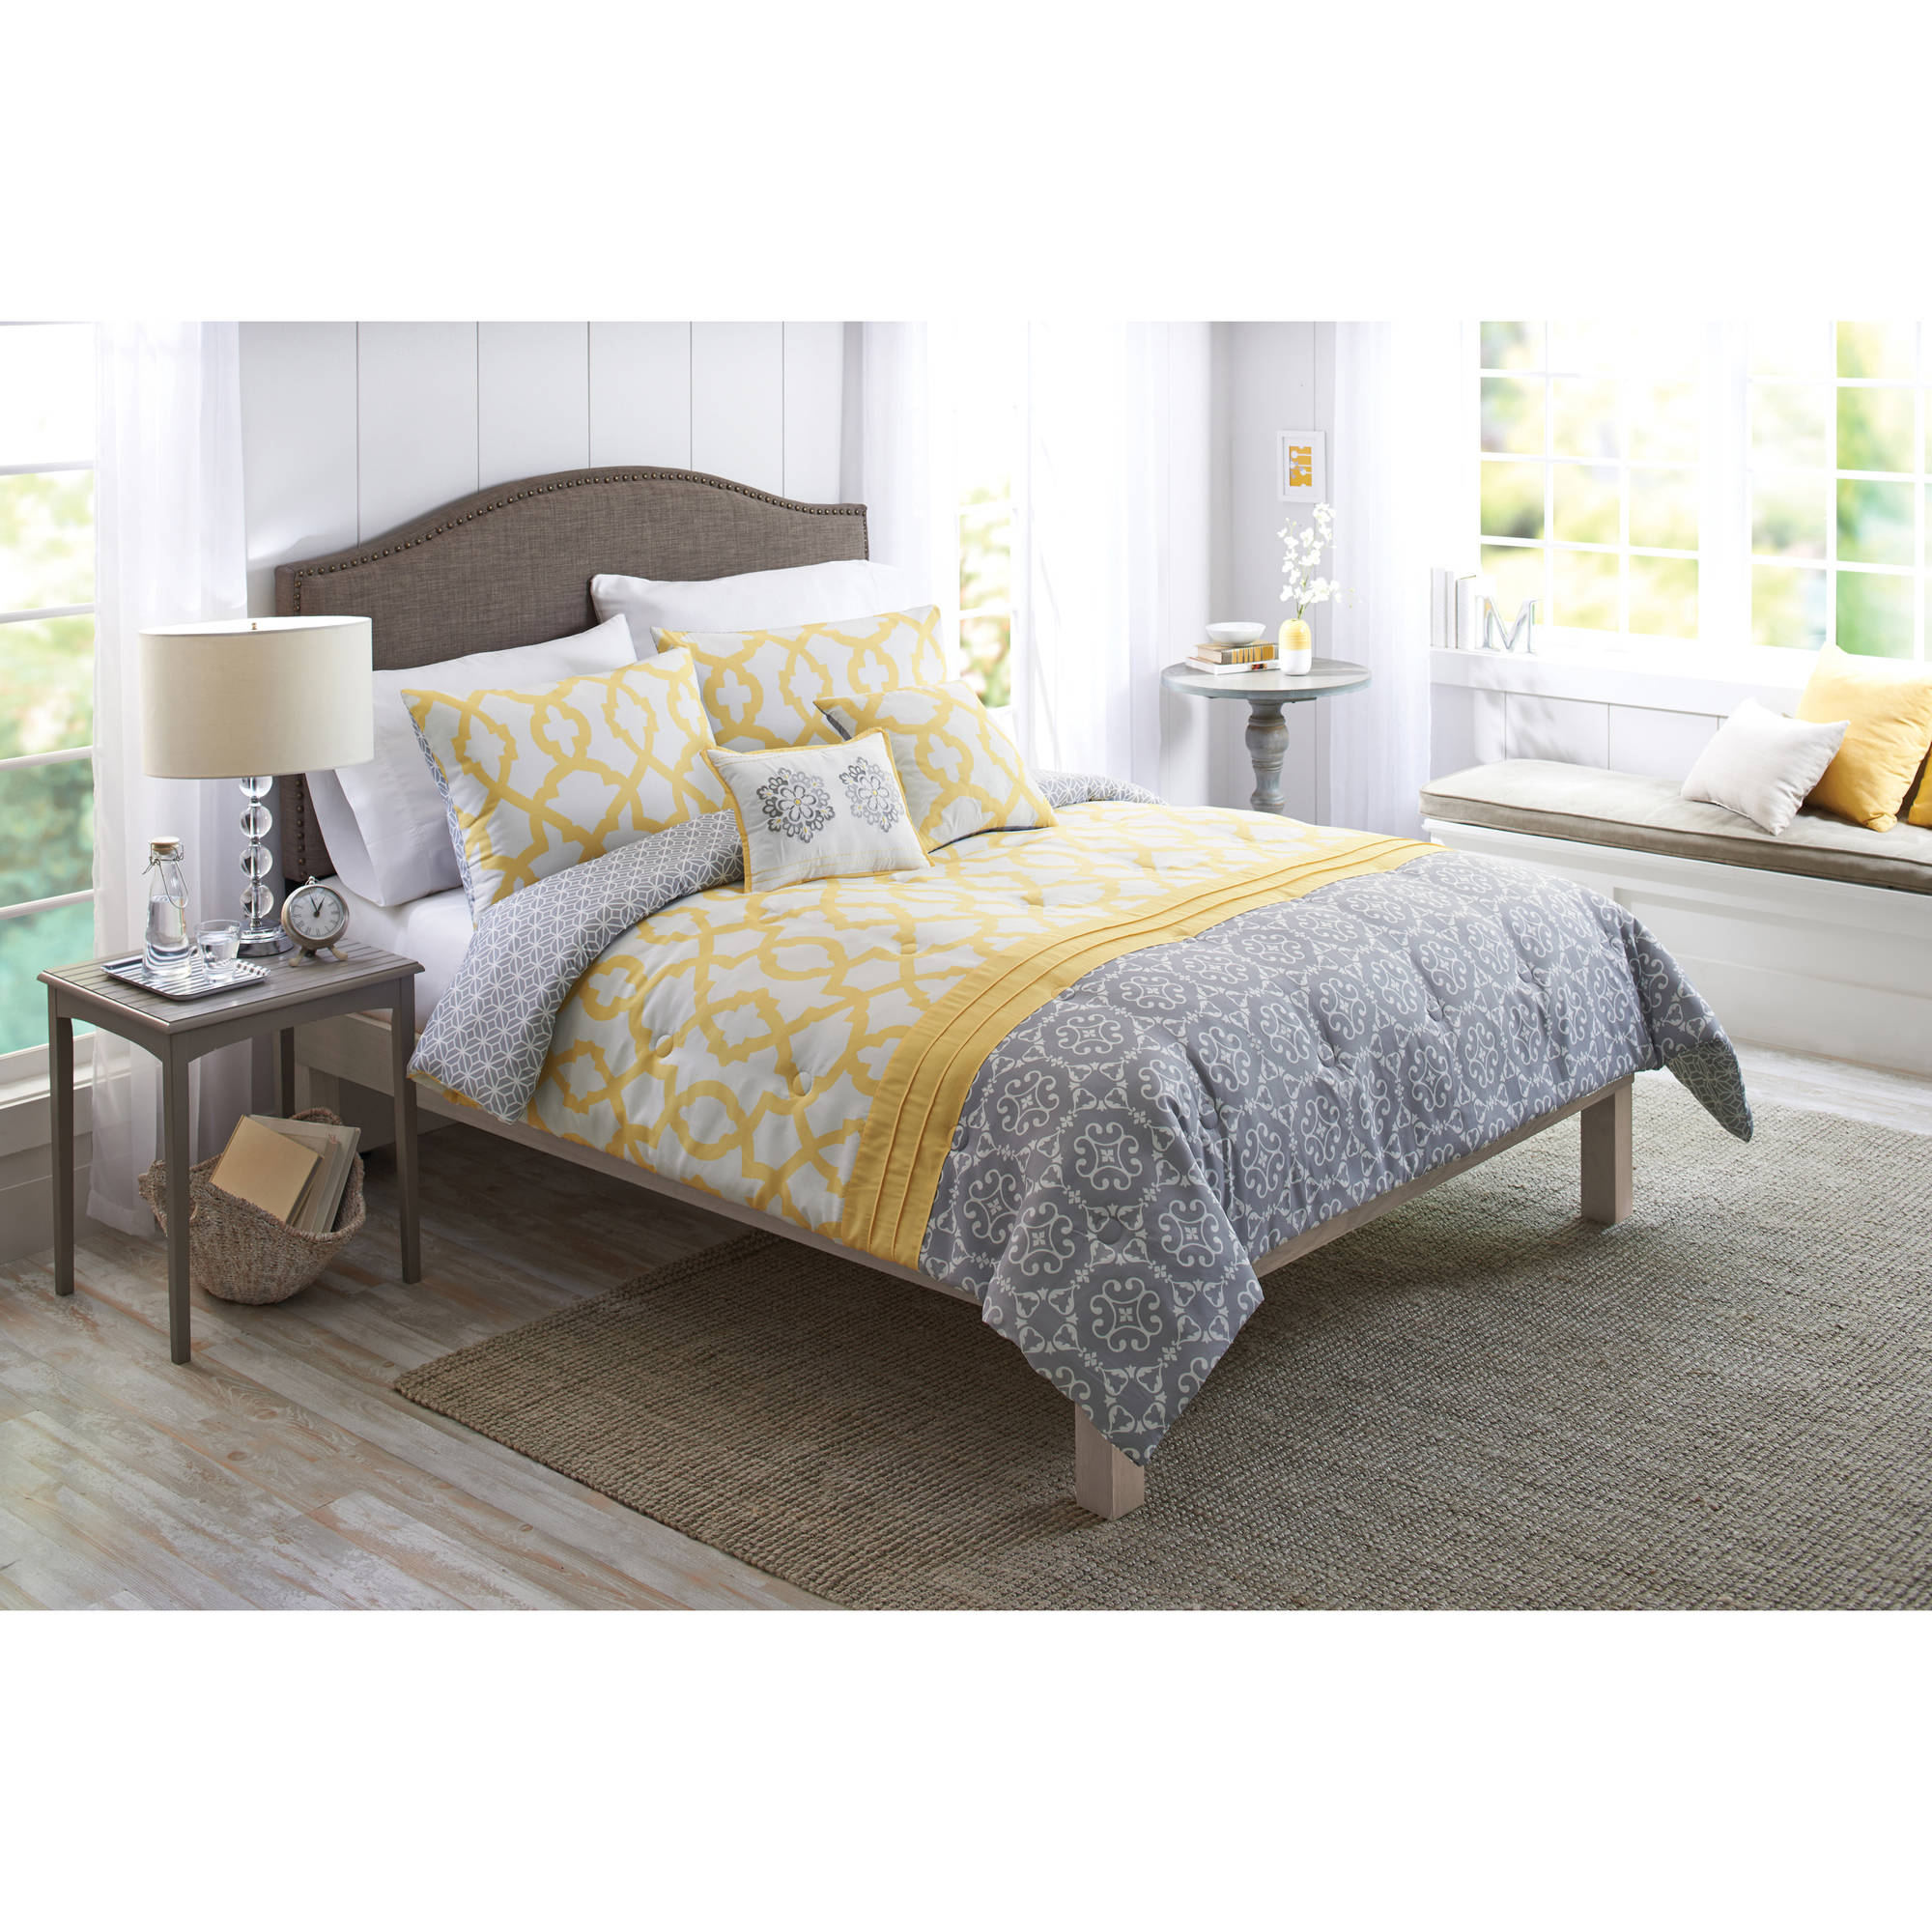 Bedding sets turquoise - Better Homes And Gardens Yellow And Gray Medallion 5piece Bedding Comforter Set